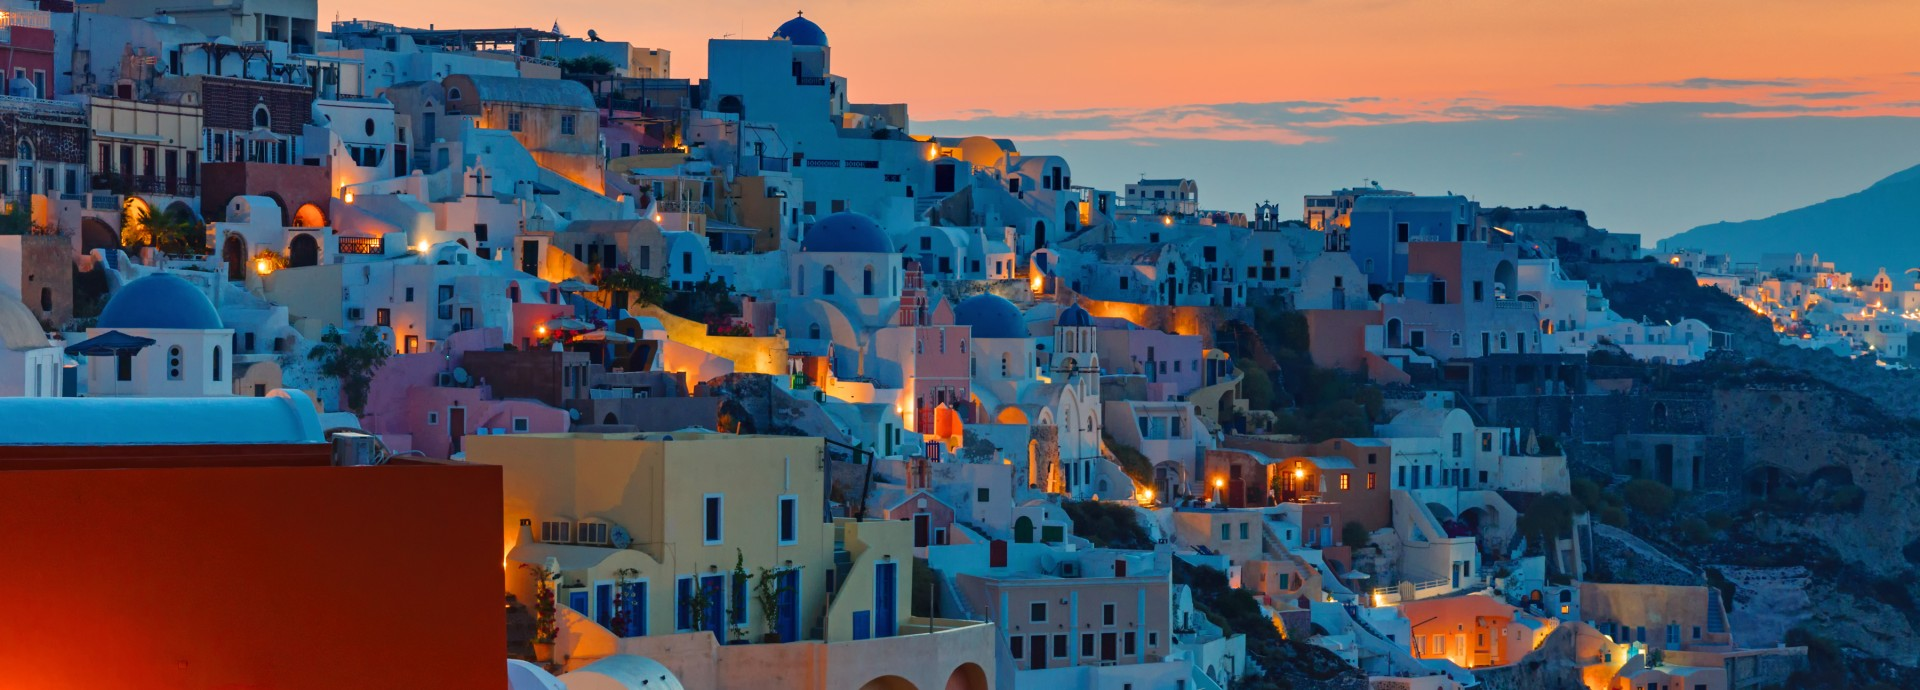 Sunrise over Oia Santorini